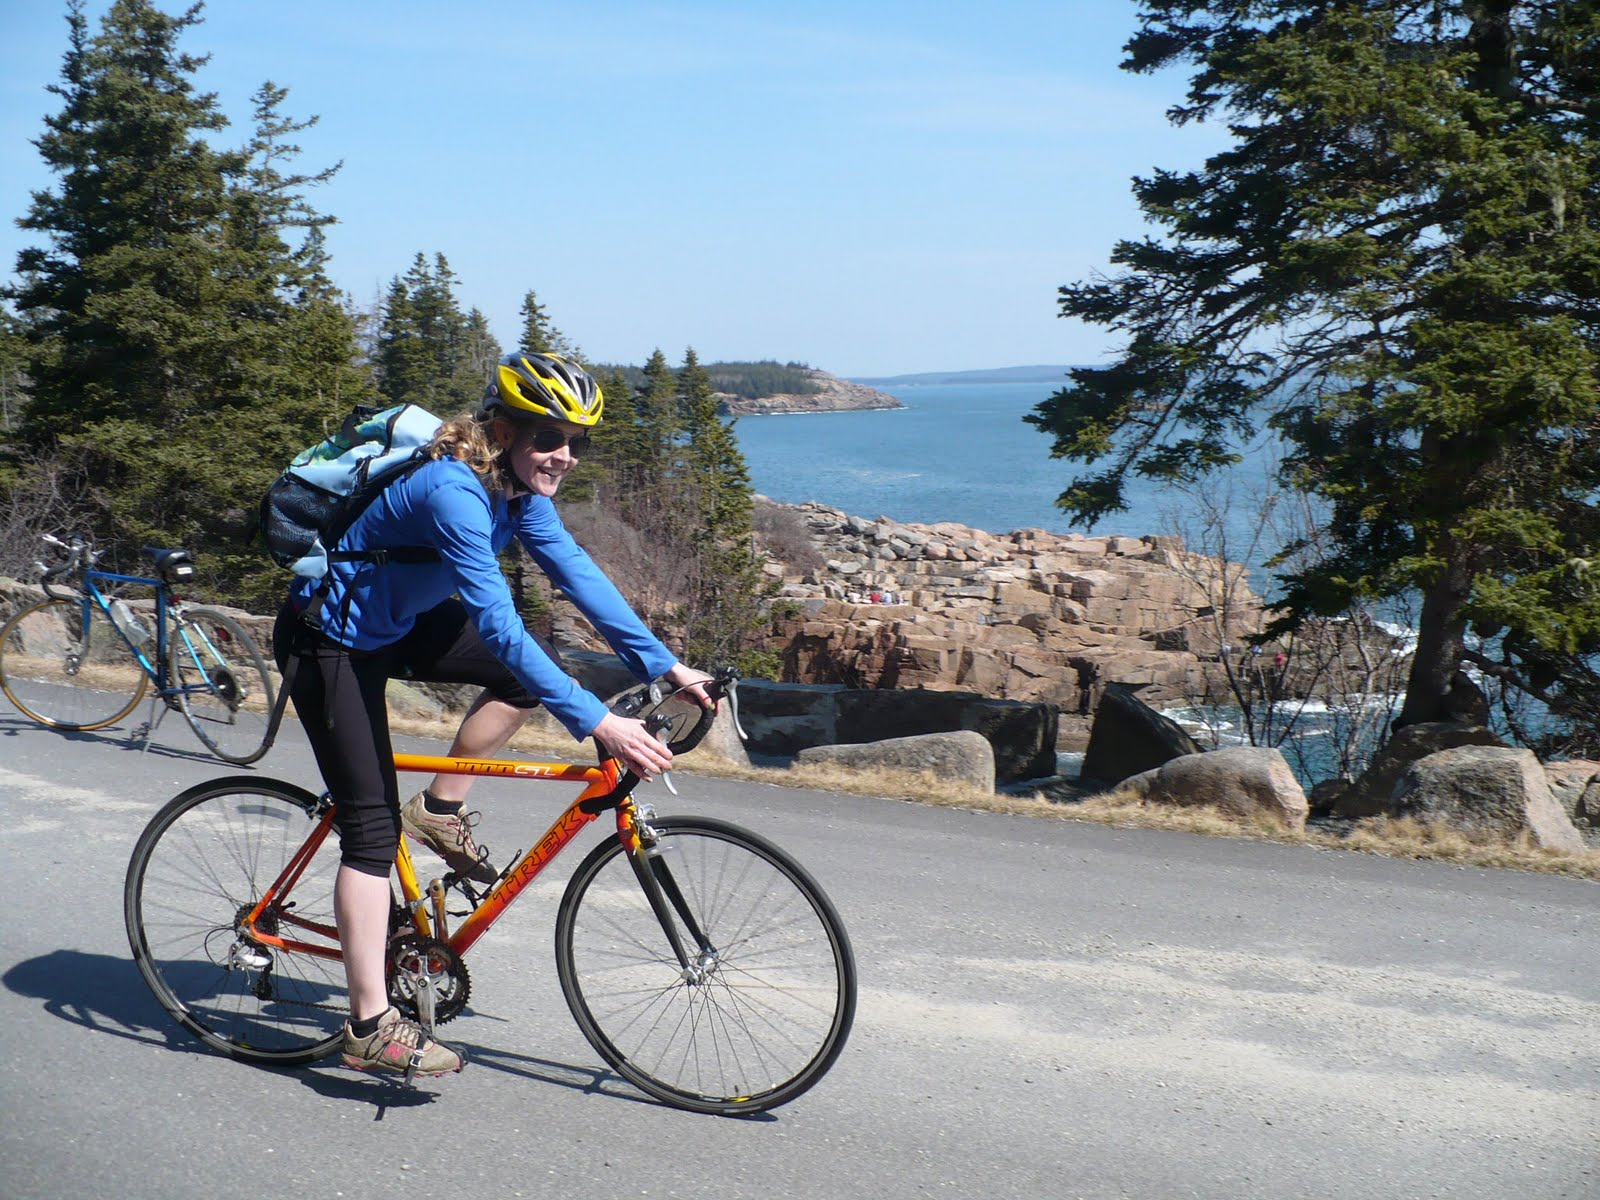 Whats Wrong With Telling Cyclists To Ride On The Bike